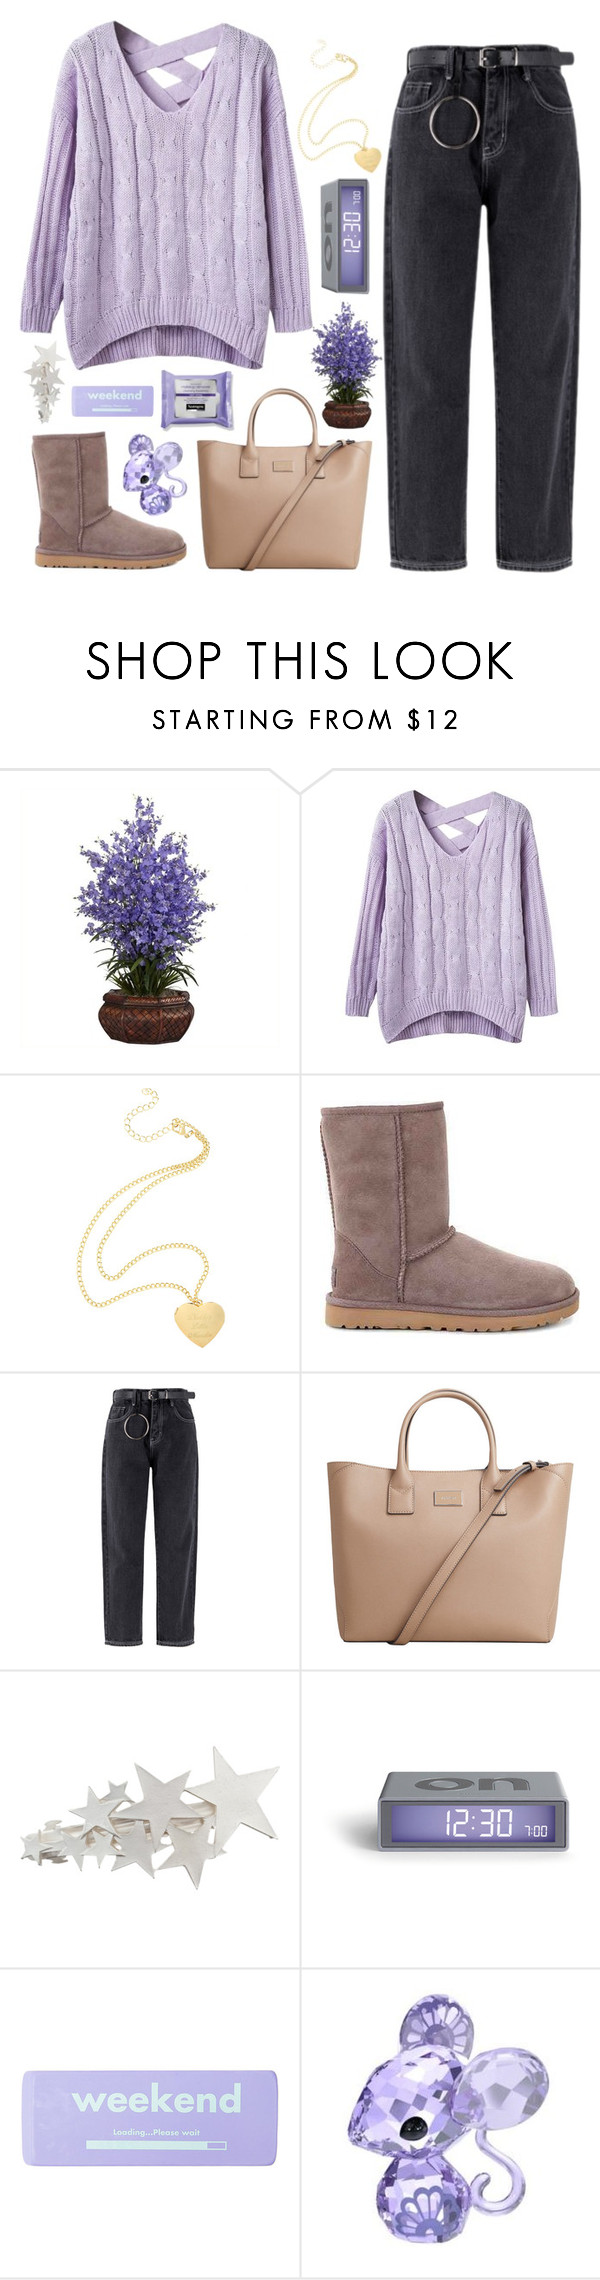 """""""Just Cause I Said It Don't Mean I Meant It"""" by sugarplumfairy98 ❤ liked on Polyvore featuring Nearly Natural, UGG, MANGO, claire's, Swarovski and spf98fashion"""